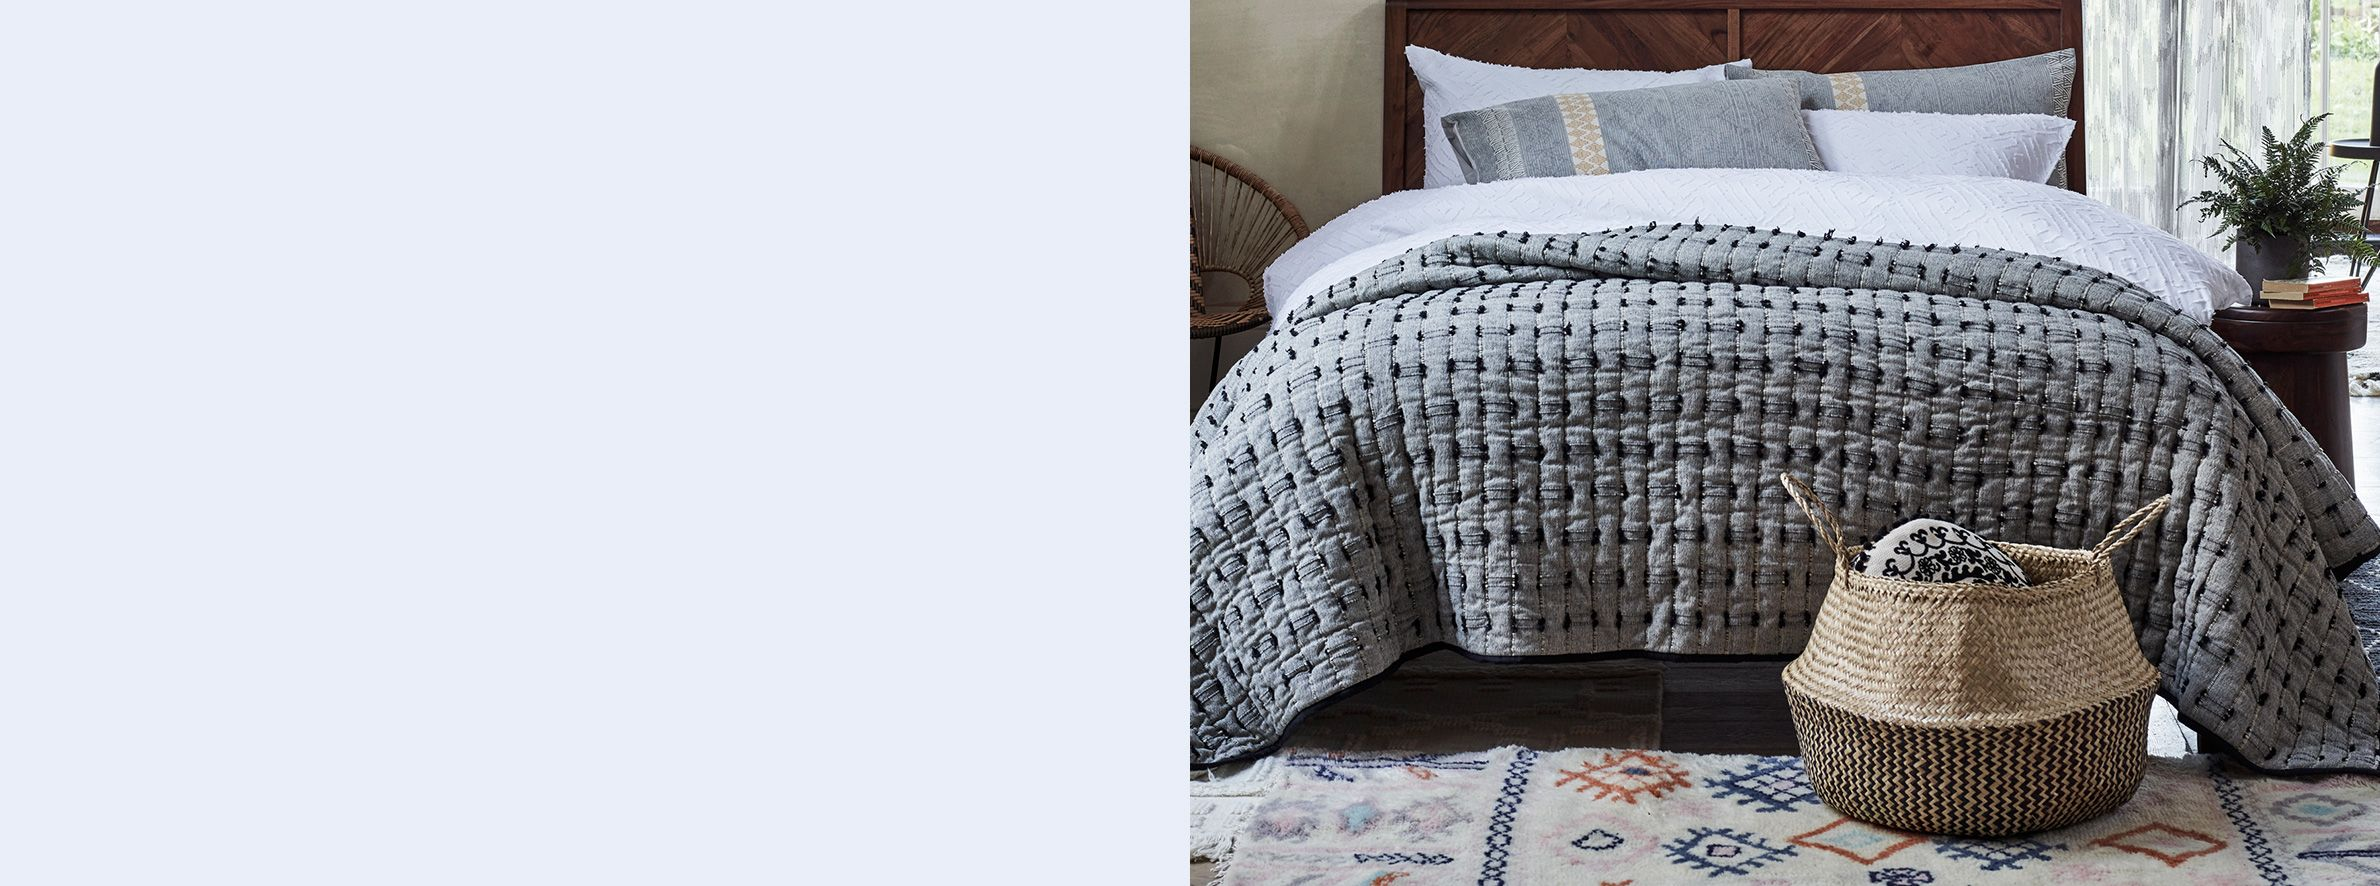 c63889d0c5 Make a warm, relaxing space with a selection of soft throws and blankets